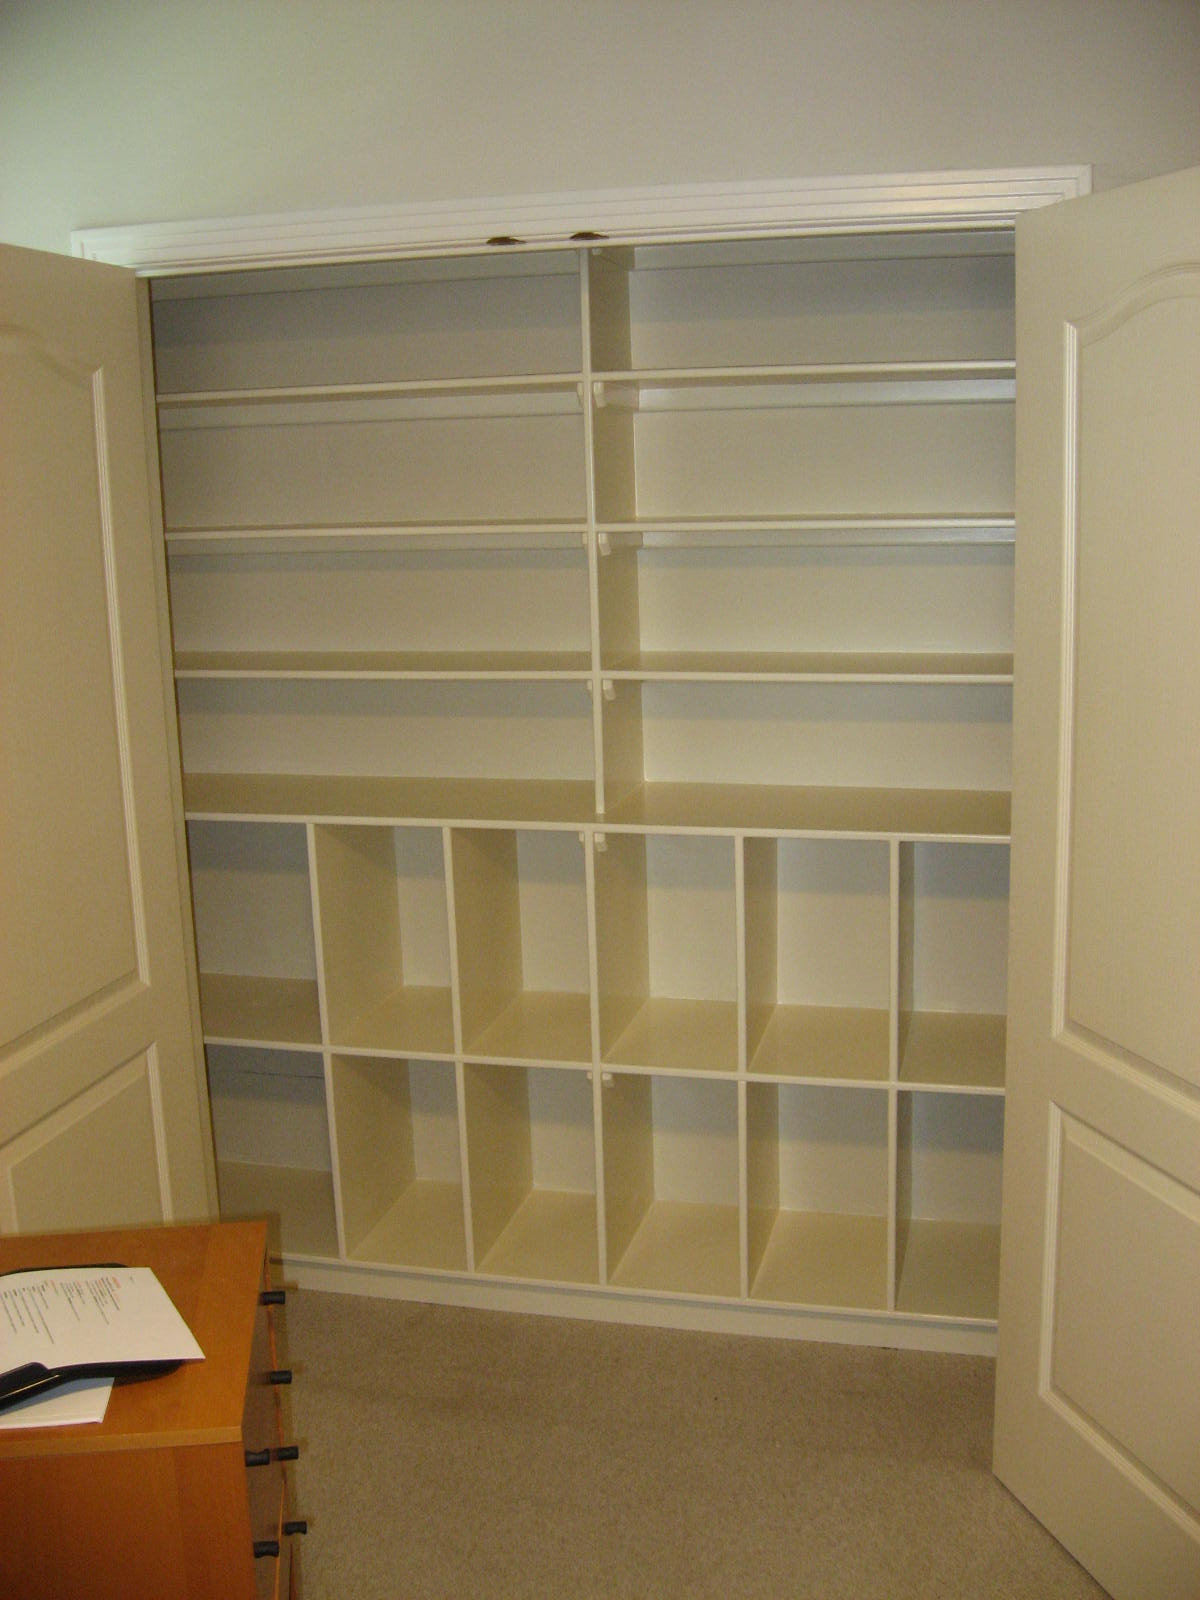 Our Client Started A Business And Wanted To Use Her Office Closet Display Wares But There Was Only Of Flimsy Shelves